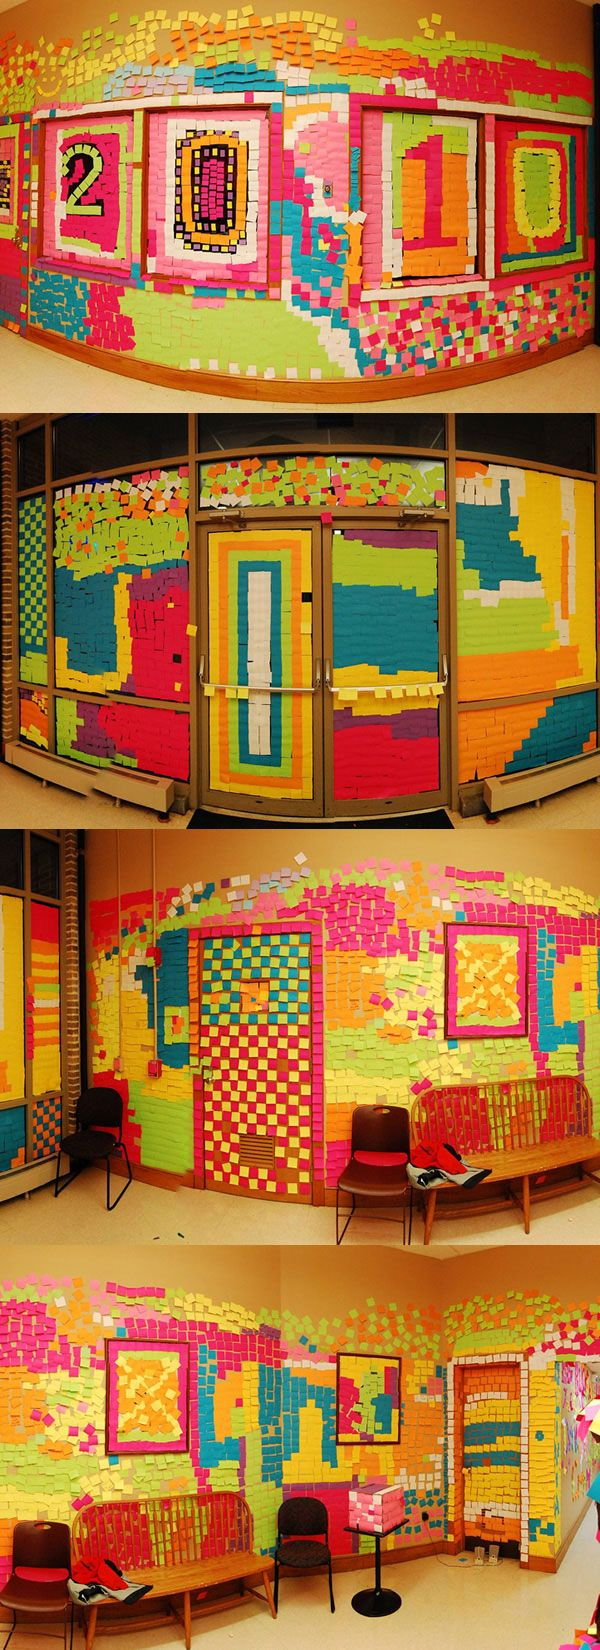 The Most Creative Post-It Note Prank Ever ... it's a mosaic! .... http://www.bitrebels.com/geek/the-most-creative-post-it-note-prank-ever/